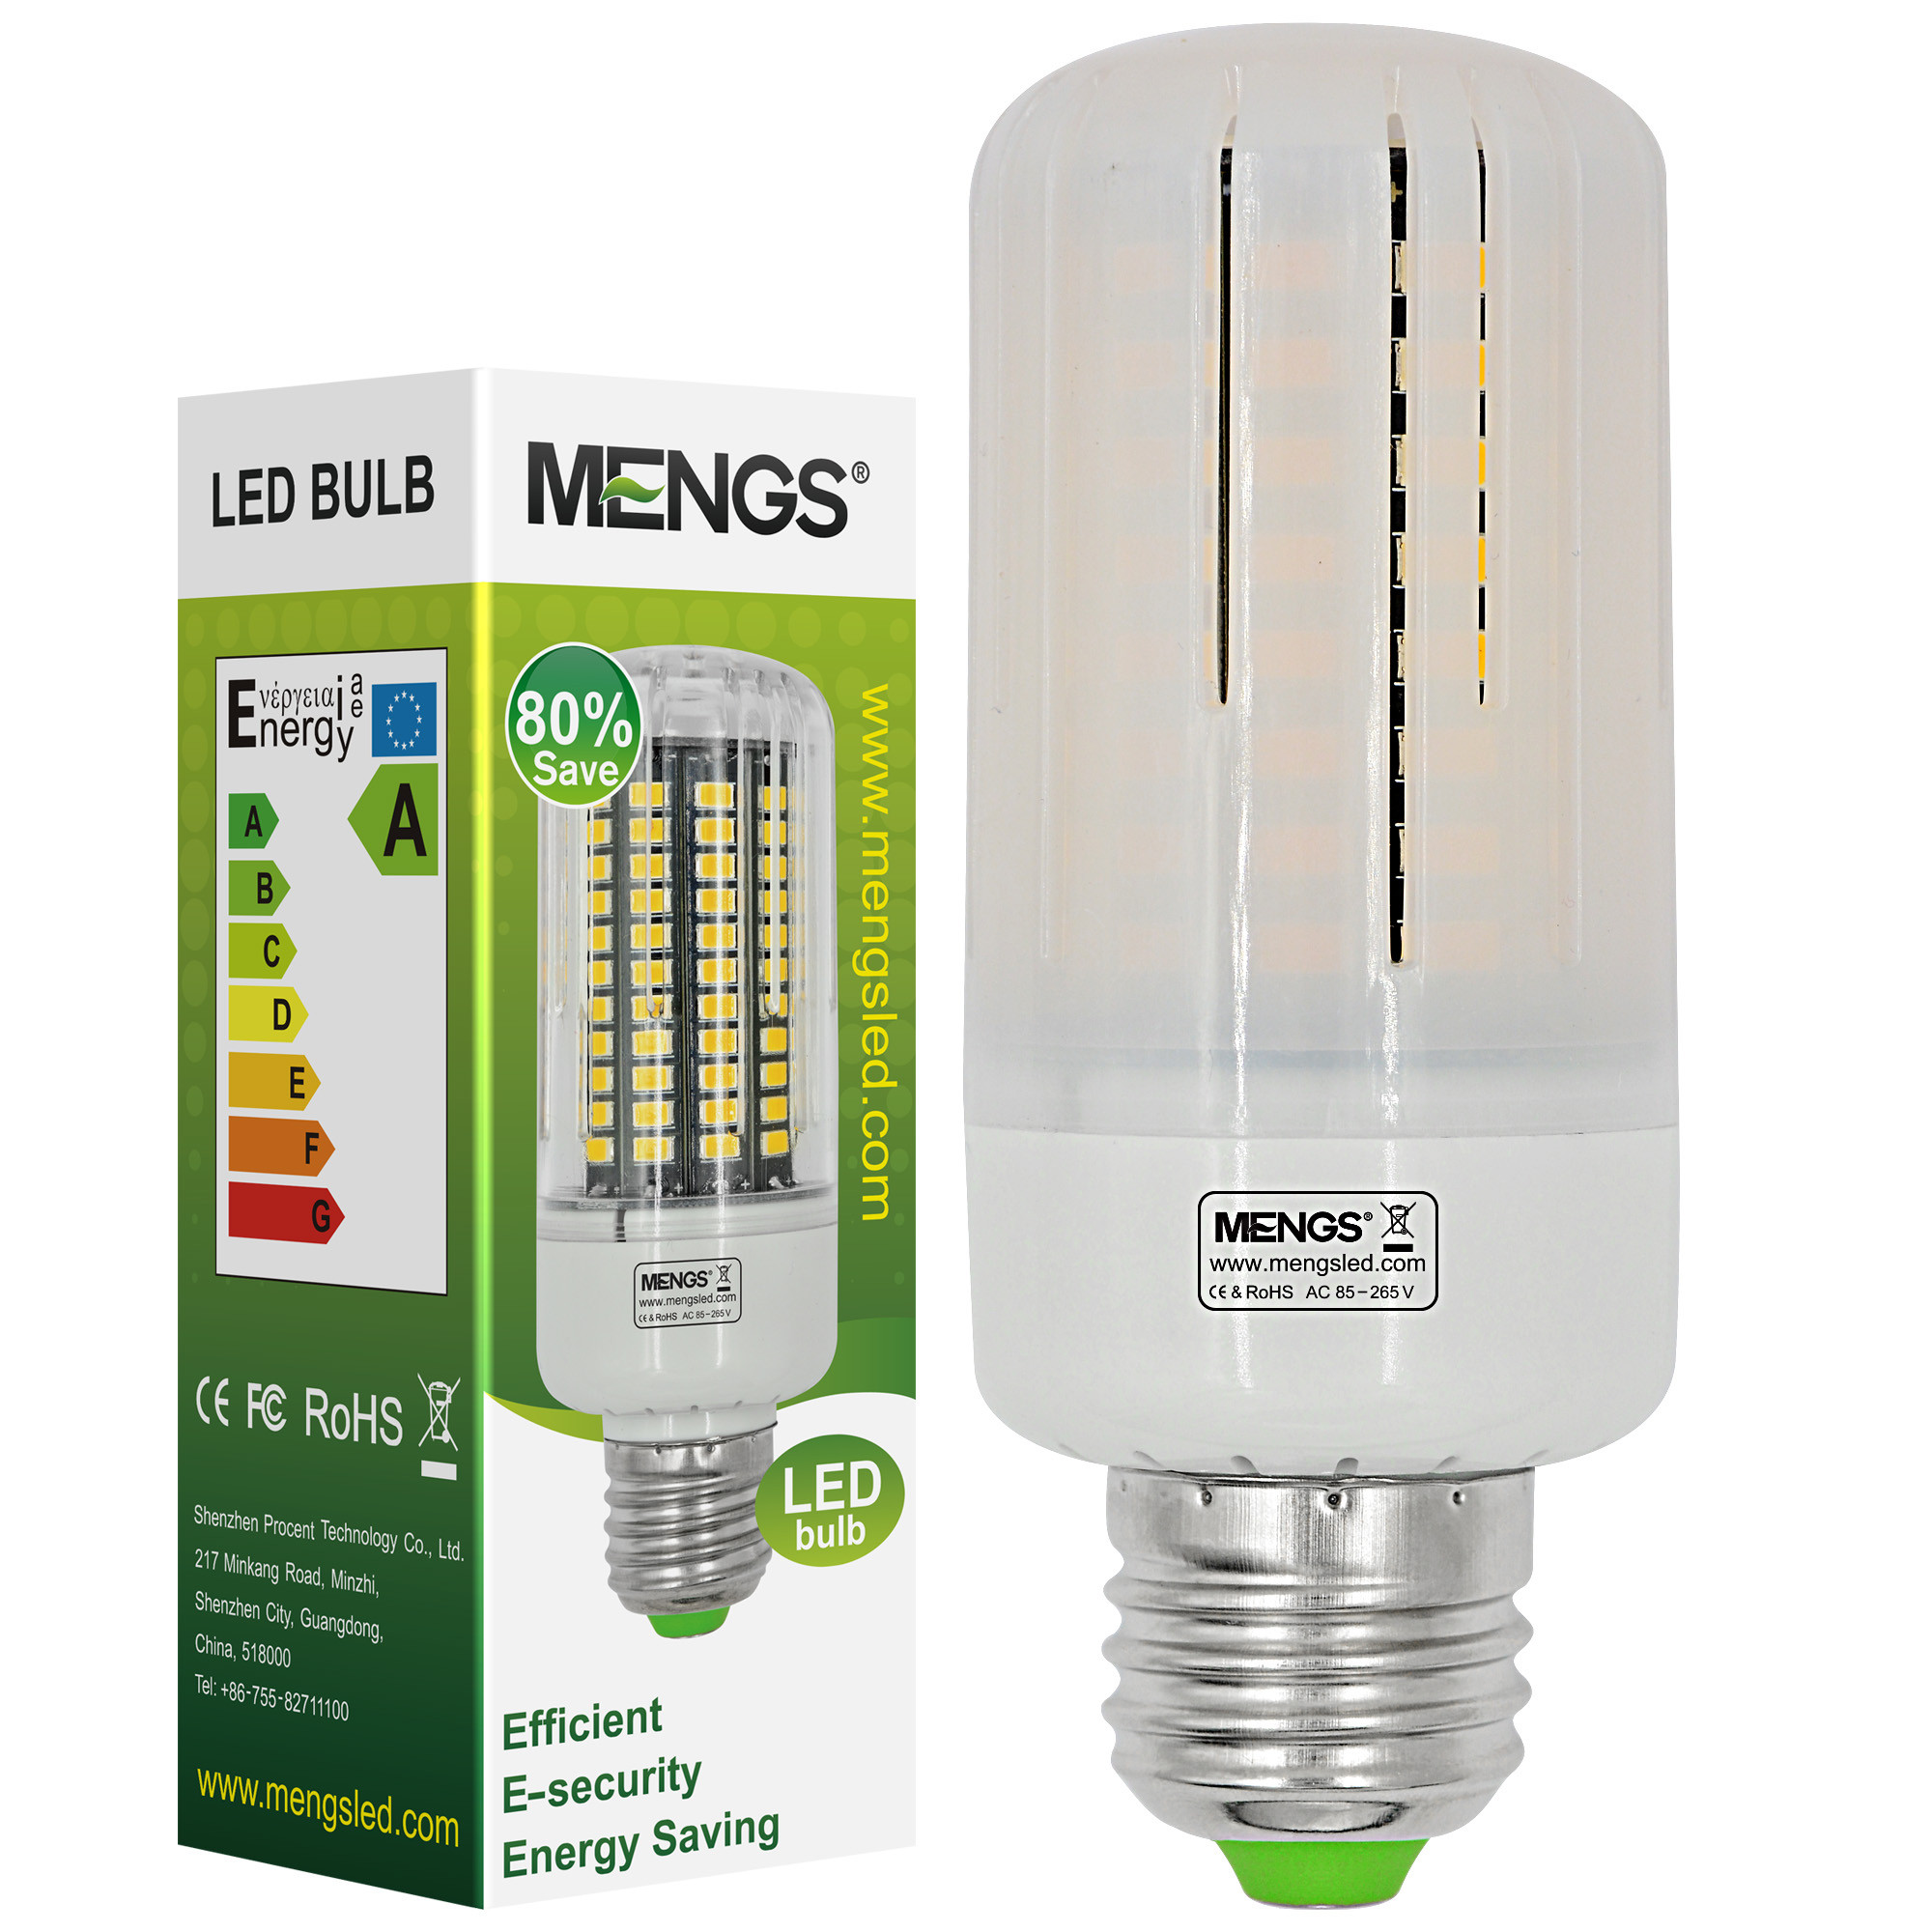 MENGS® Anti-Strobe E27 12W LED Corn Light 100x 5736 SMD LB LED Bulb Lamp In Cool White Energy-Saving Lamp